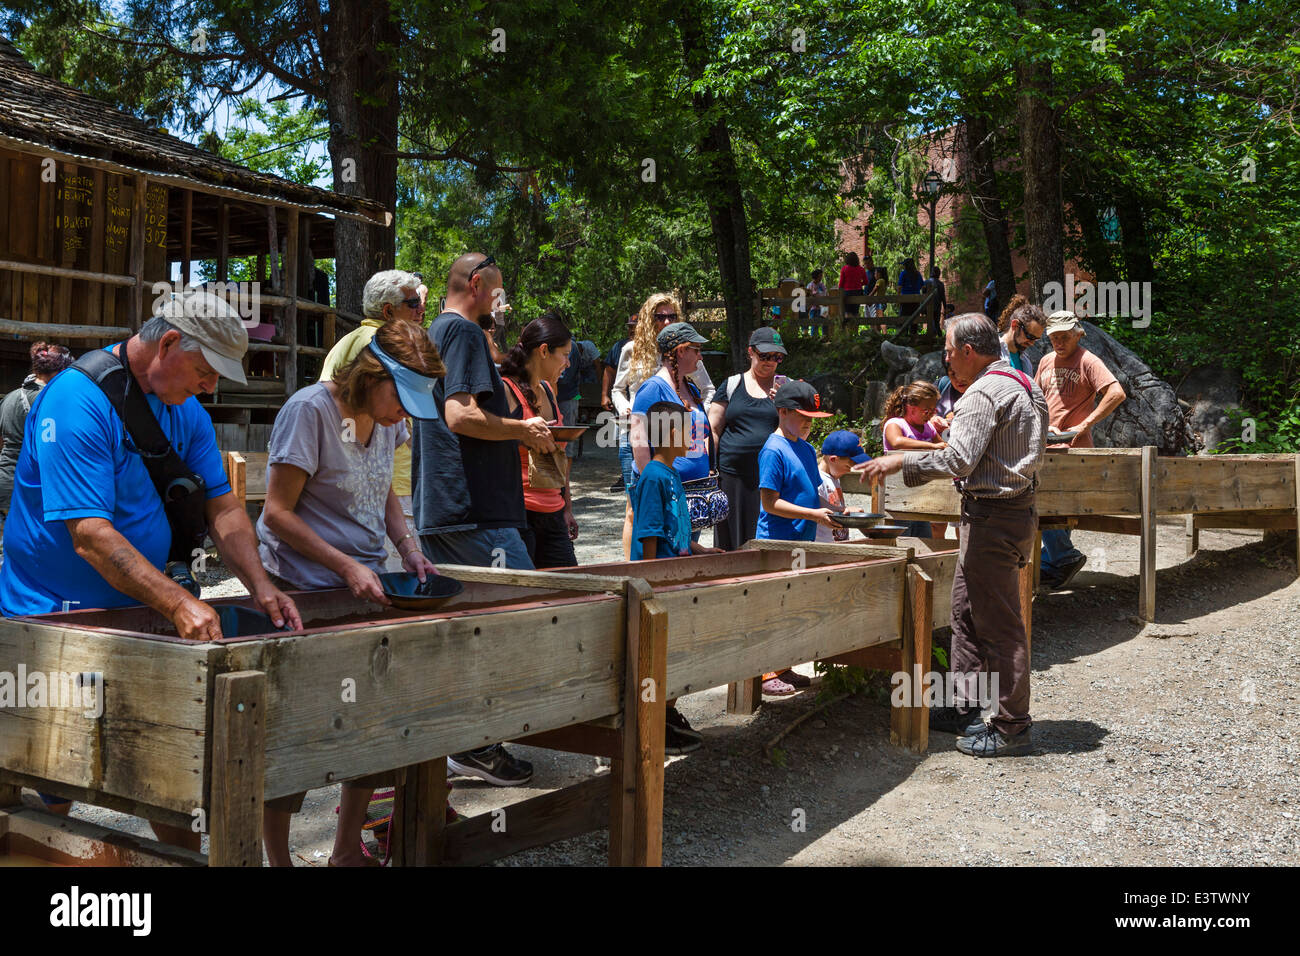 Tourists panning for gold in the old gold mining town of Columbia, Tuolumne County, Southern Gold Country, California, - Stock Image